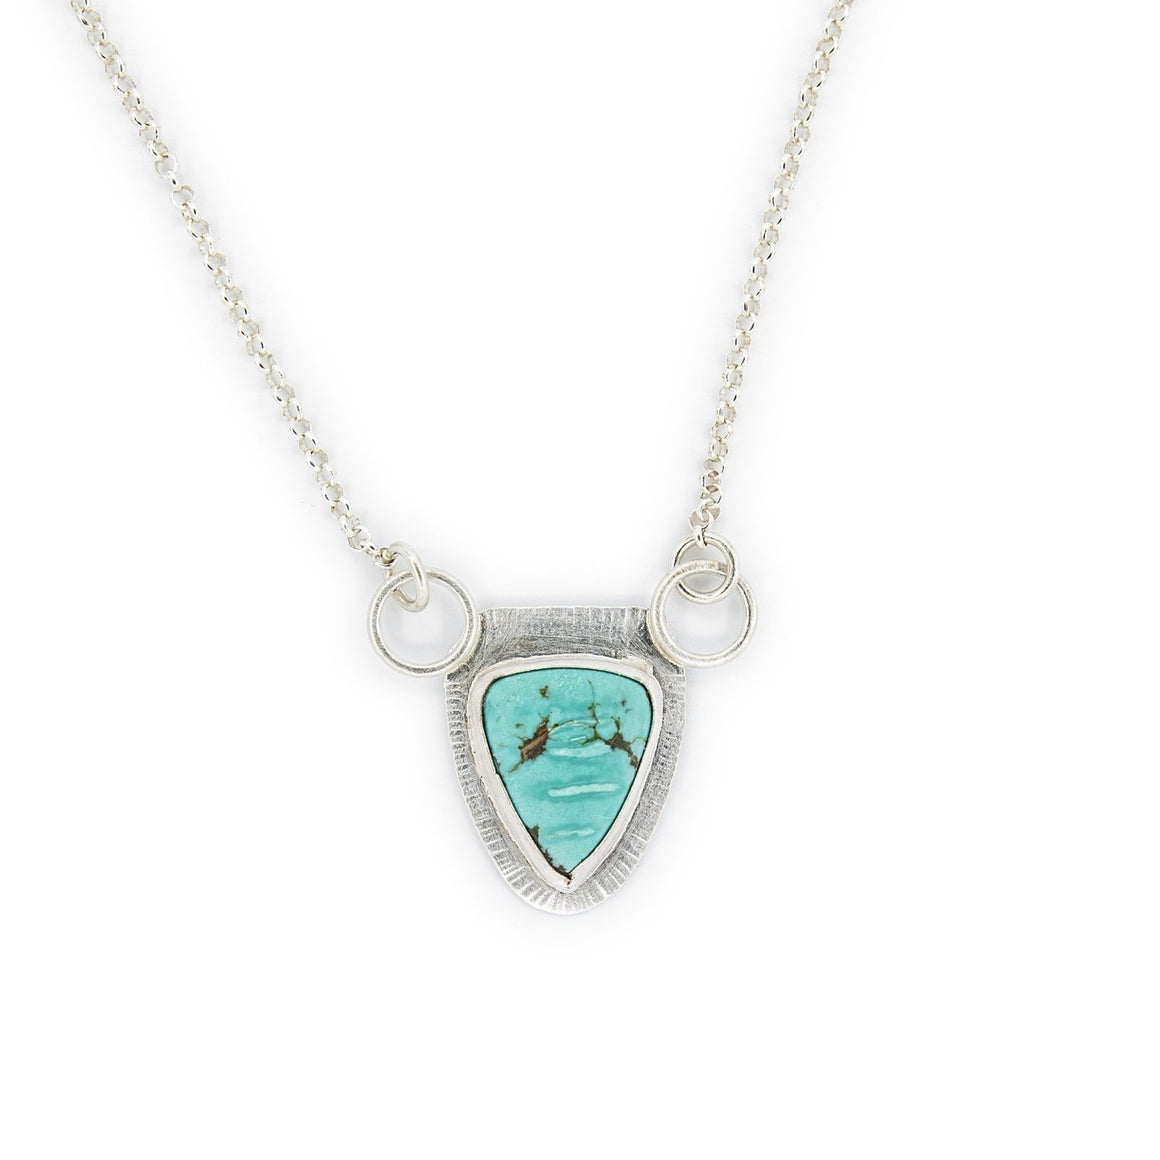 Celina - Balance - Pilot Mountain Turquoise Necklace